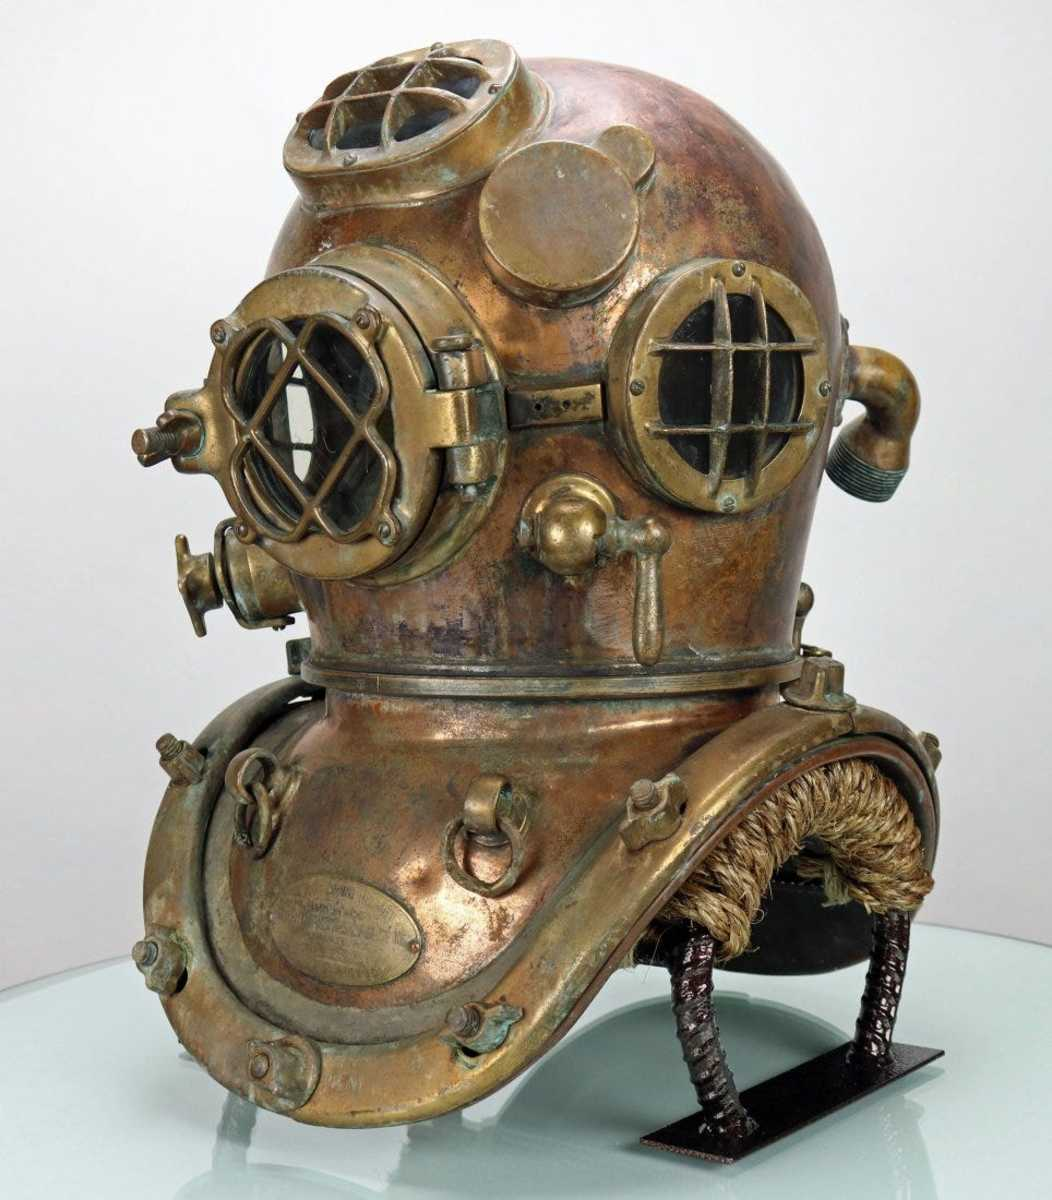 U.S. Navy Mark V diving helmet made by Diving Equipment & Salvage Company (DESCO) on D-Day, June 6, 1944. Just like an old penny, the helmet's copper has a warm patina with visual hints of hard work this helmet was part of over the years.